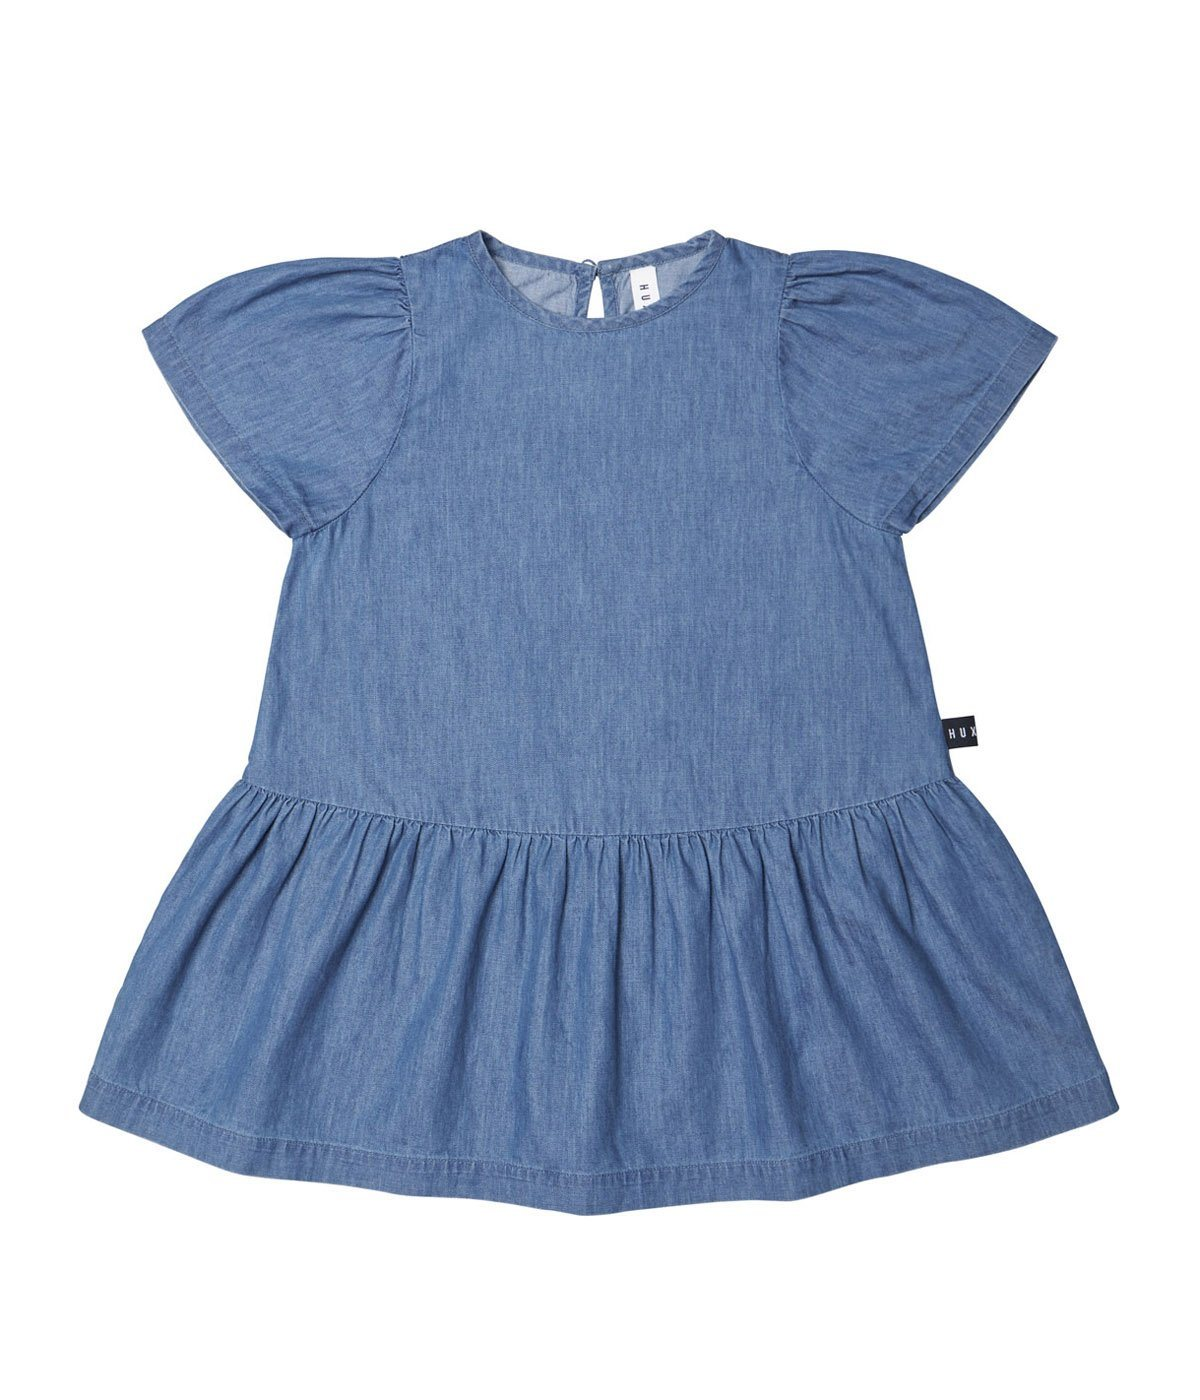 Chambray Mia Dress